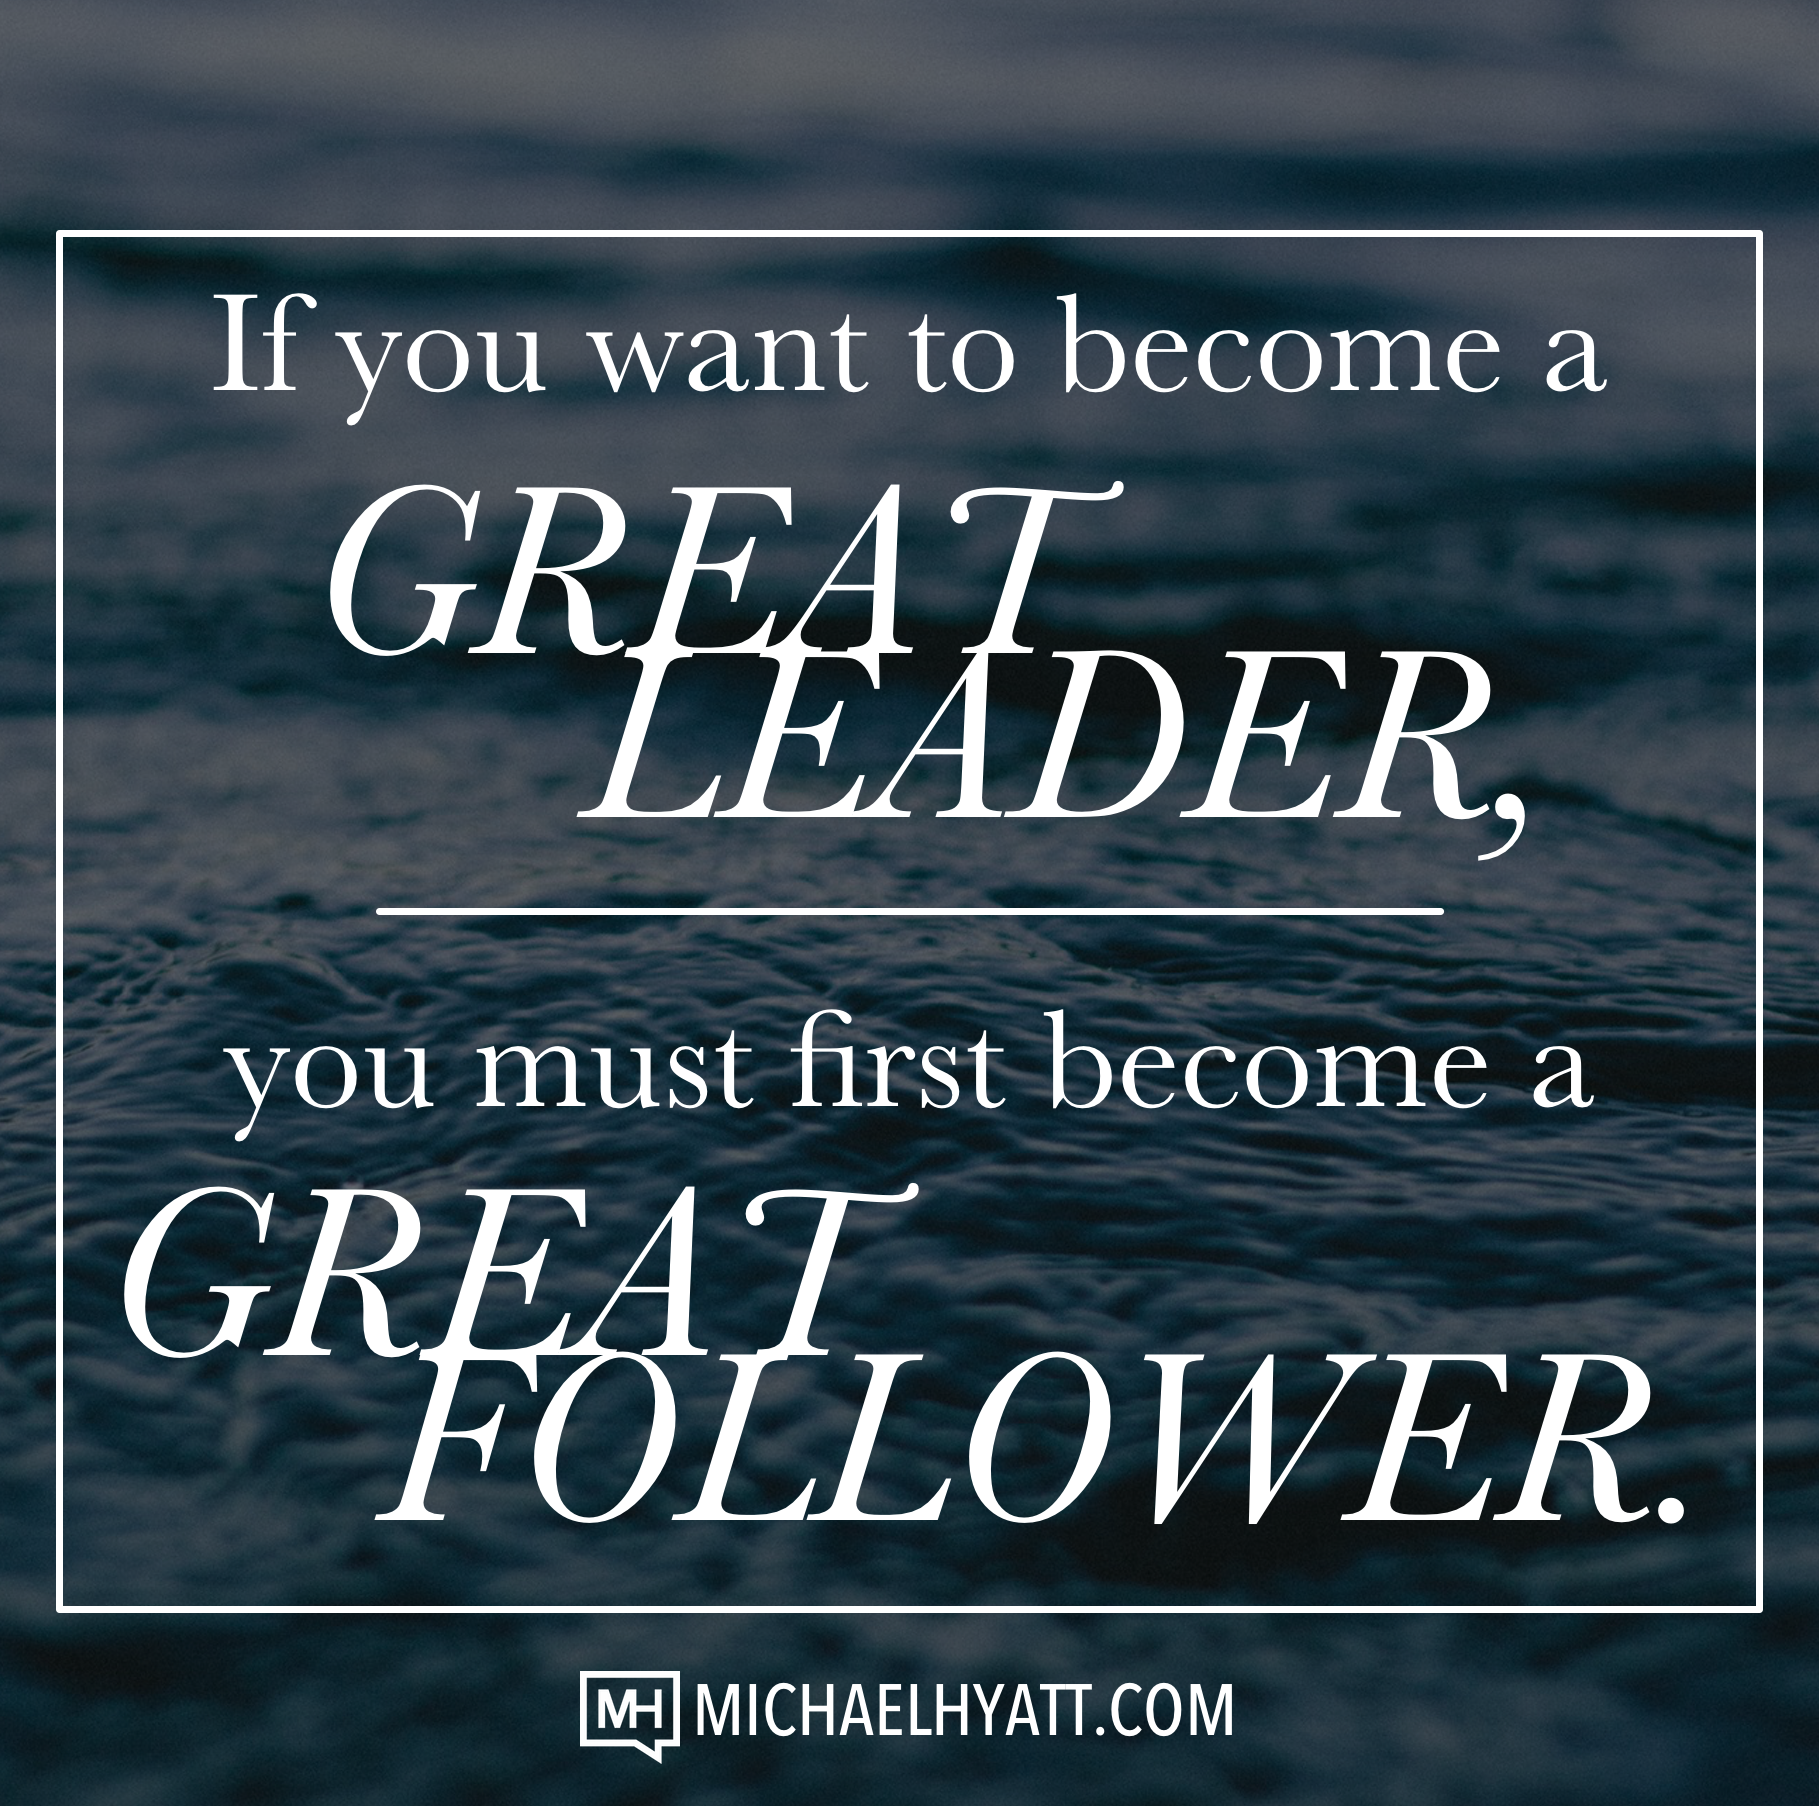 Quotes About Great Leaders Shareable Images  Inspirational